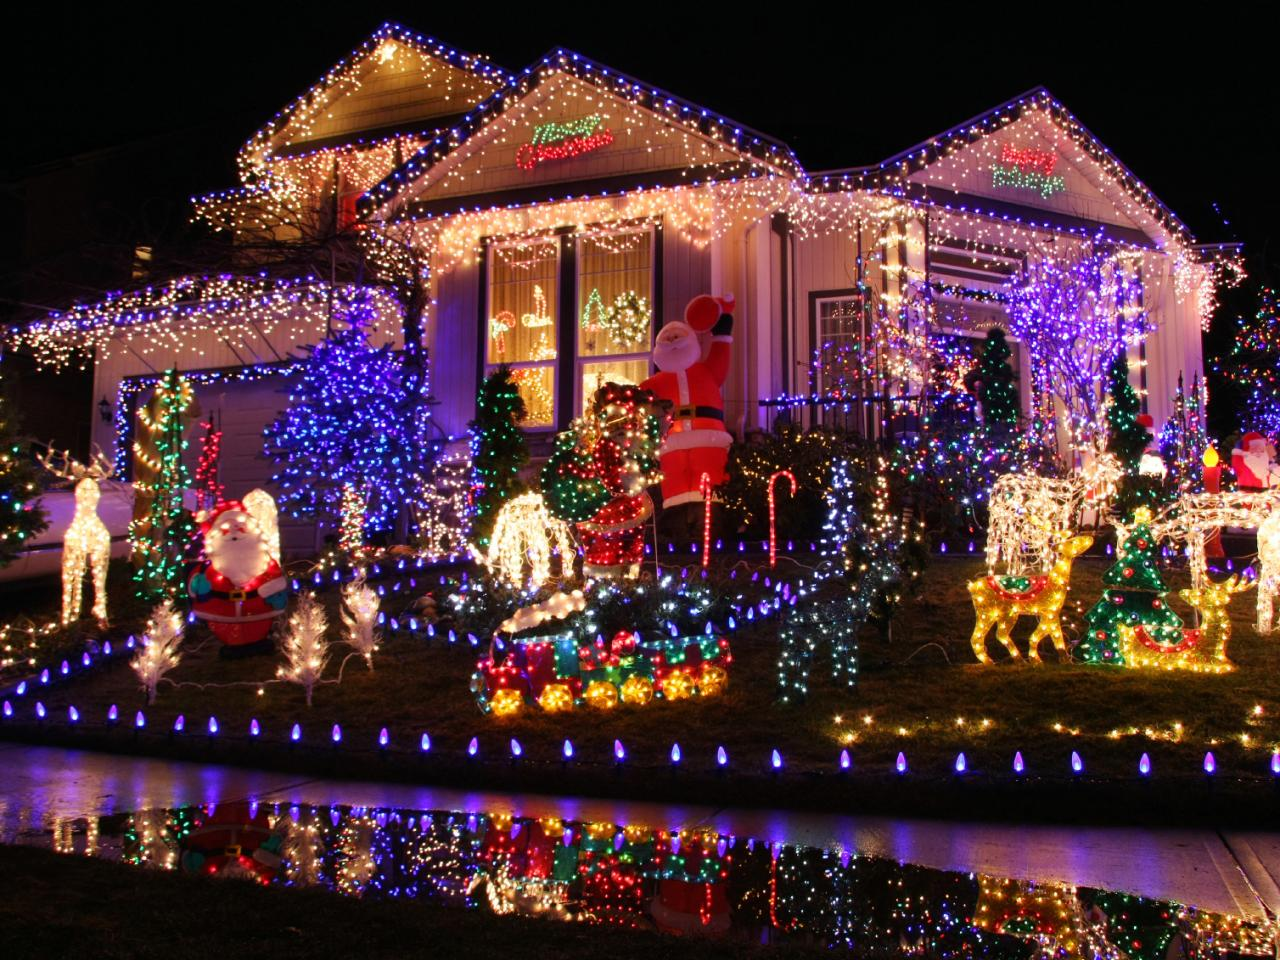 noel noel - Best Christmas Decorated Houses